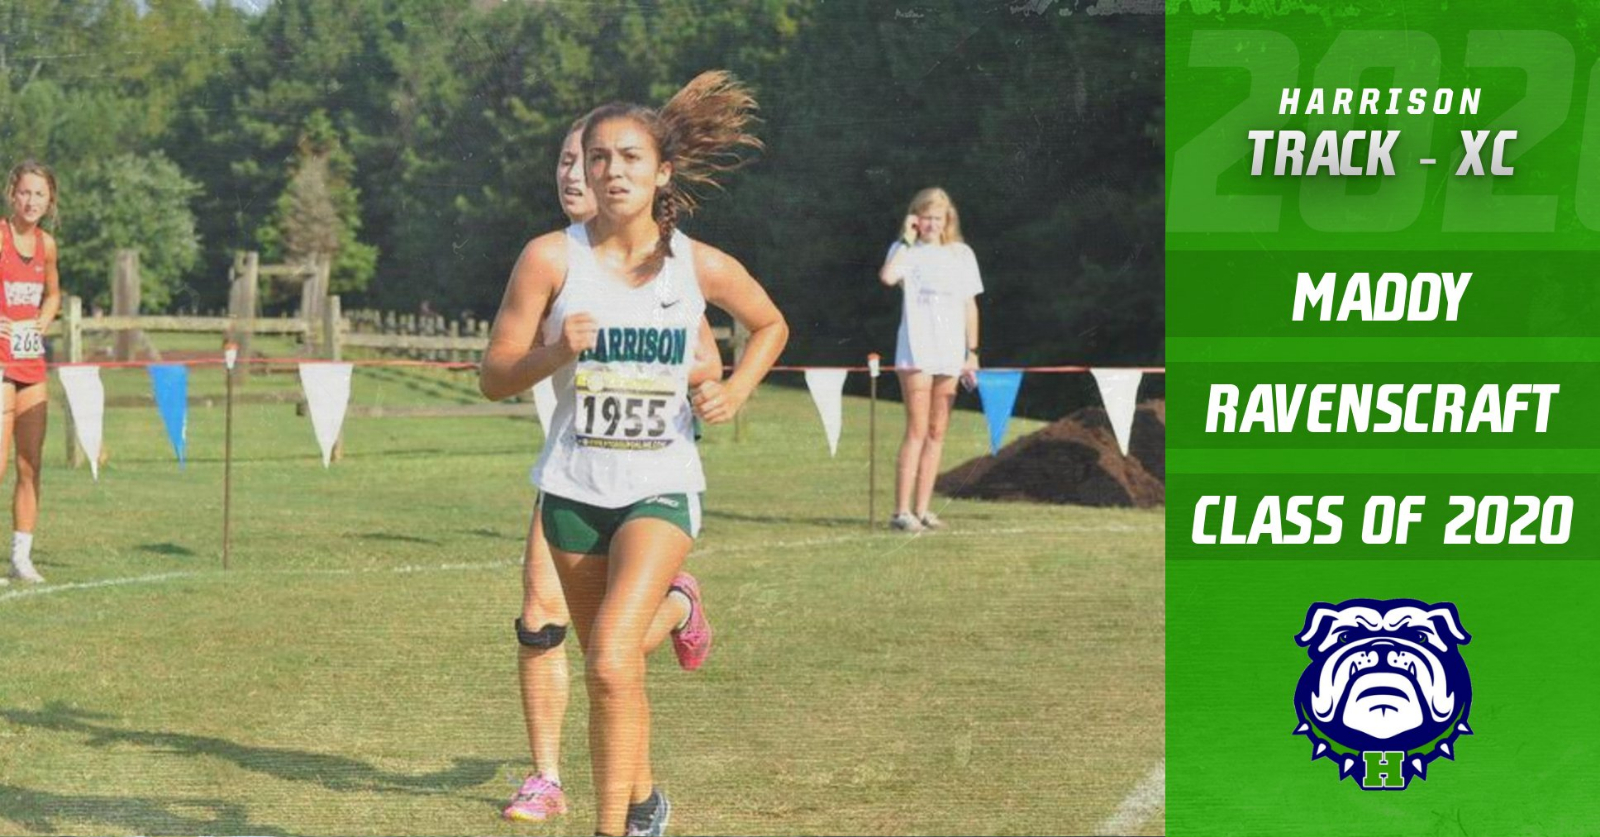 Senior Night Article – Maddy Ravenscraft